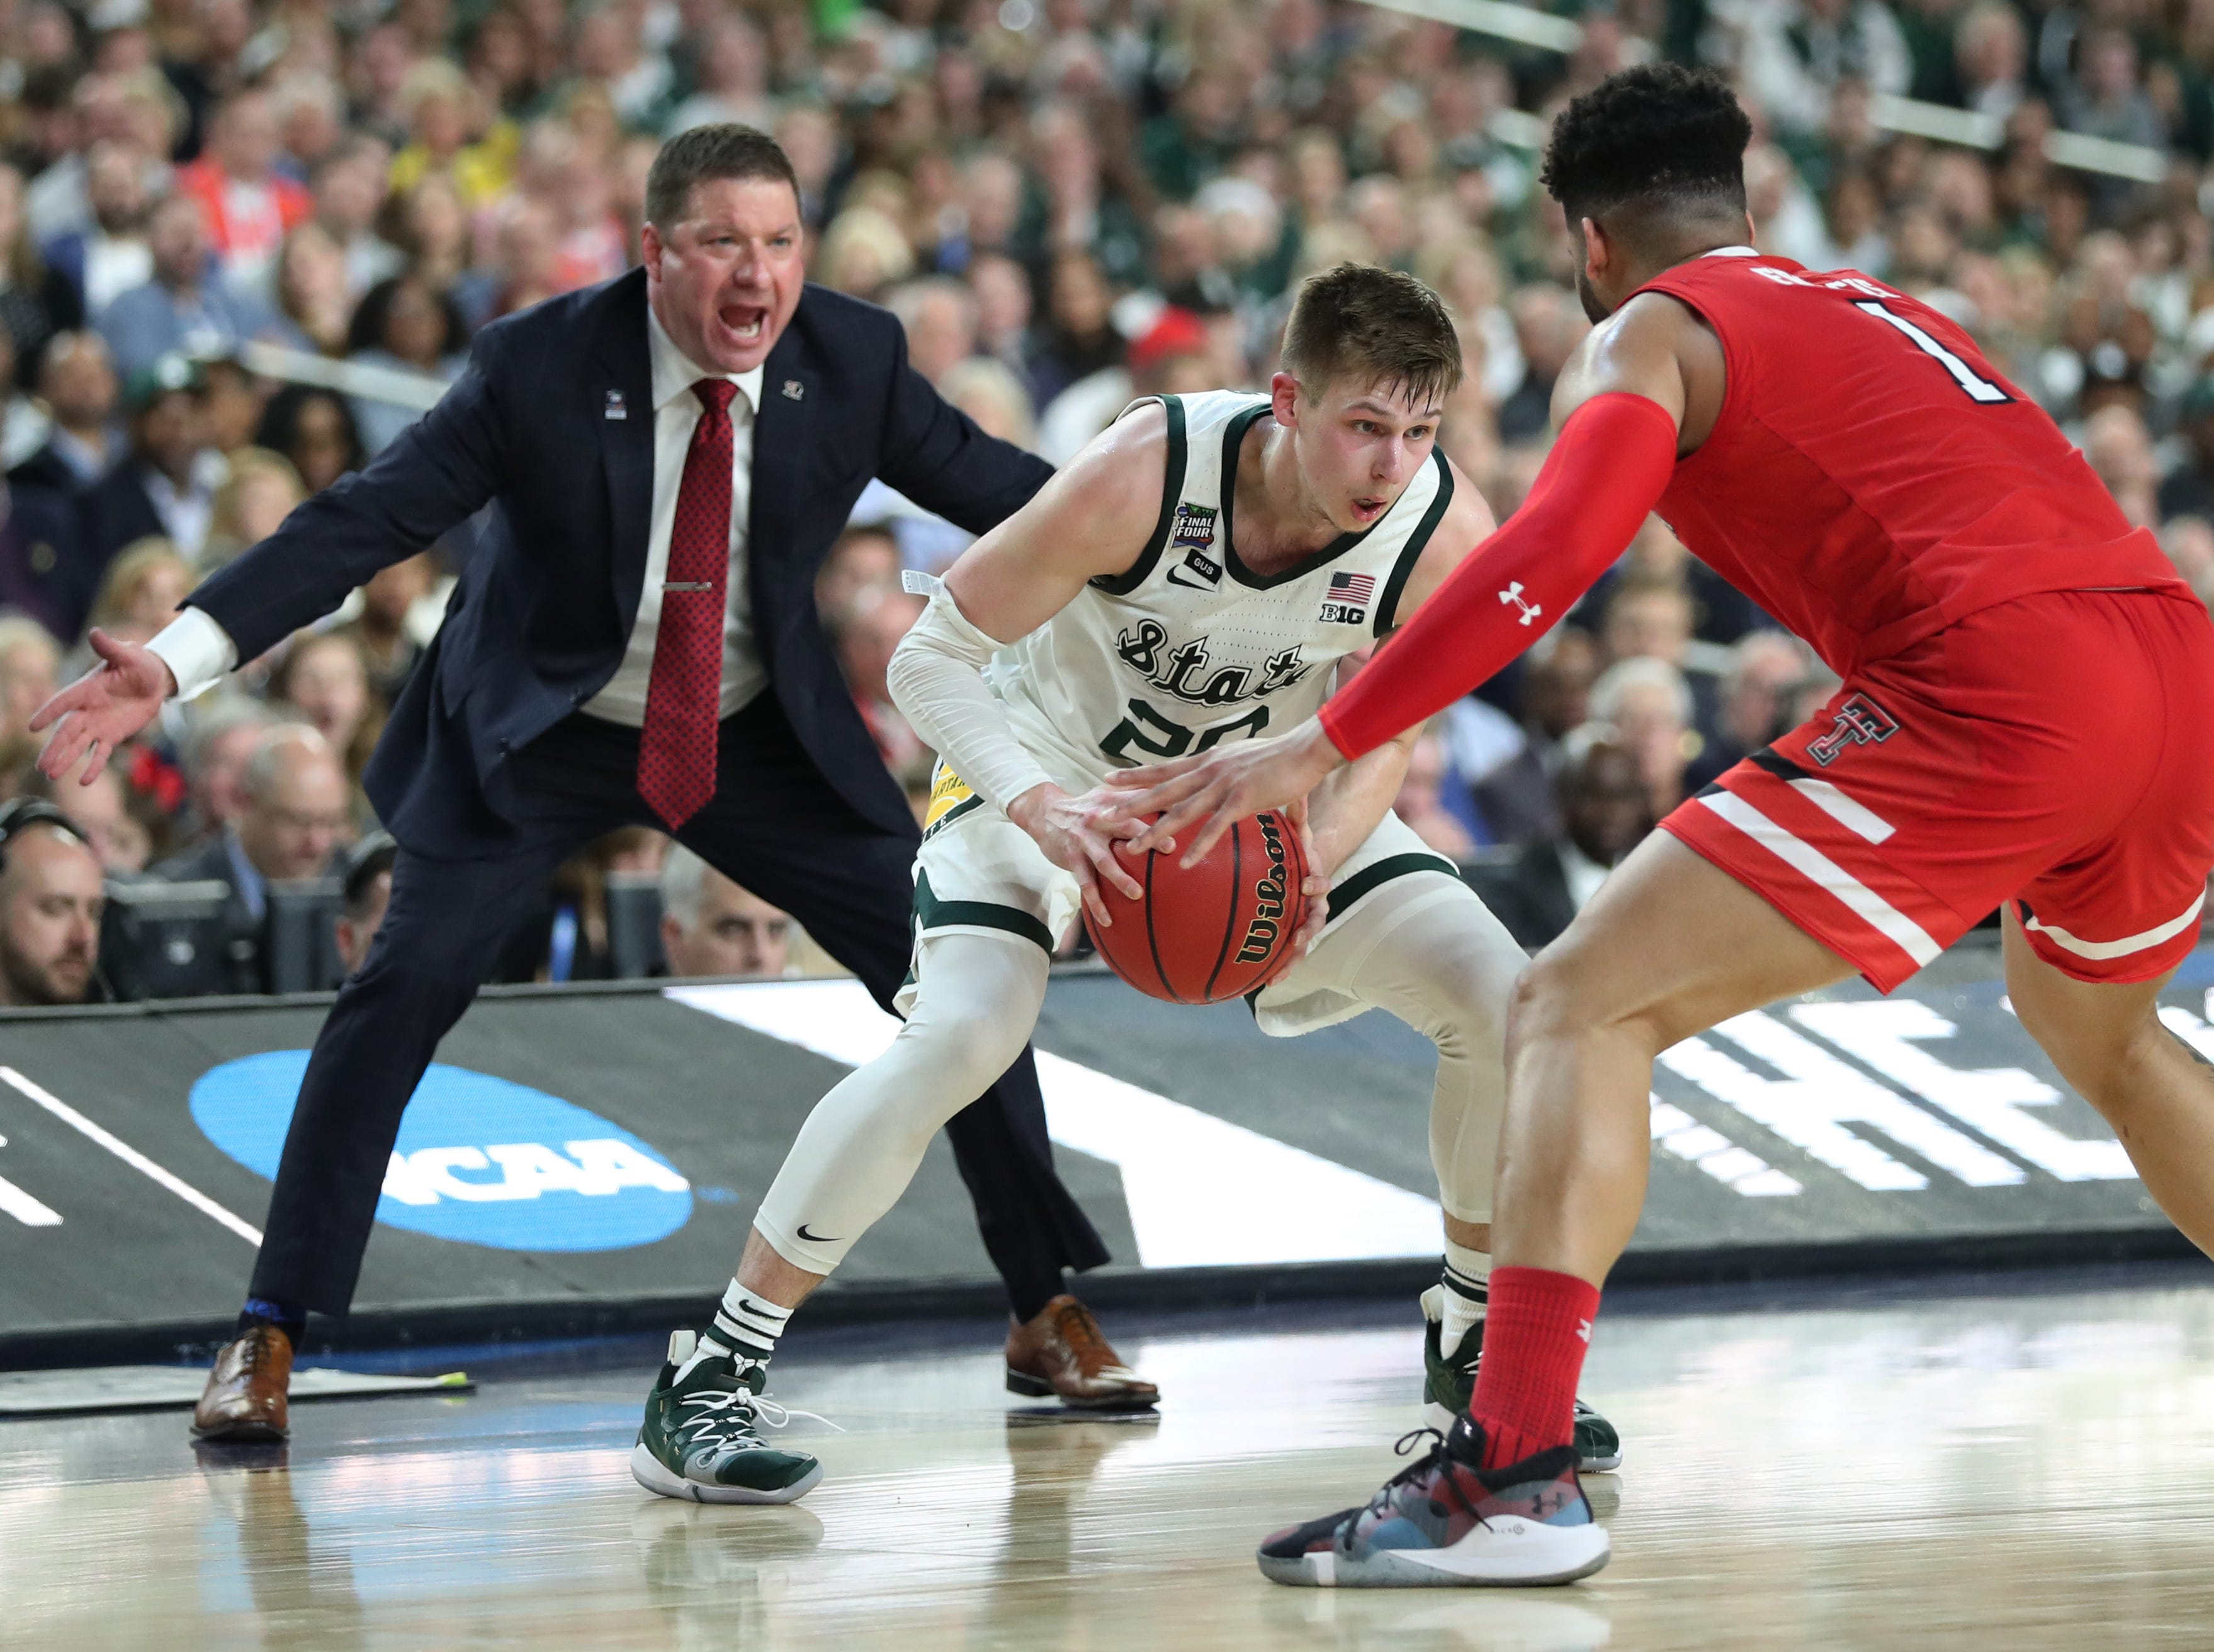 Texas Tech head coach Chris Beard is seen as Michigan State guard Matt McQuaid (20) looks to move the ball around Texas Tech guard Brandone Francis (1) in the first half of the Spartan's Final Four game at U.S. Bank Stadium in Minneapolis, Minnesota on Saturday, April 06, 2019.